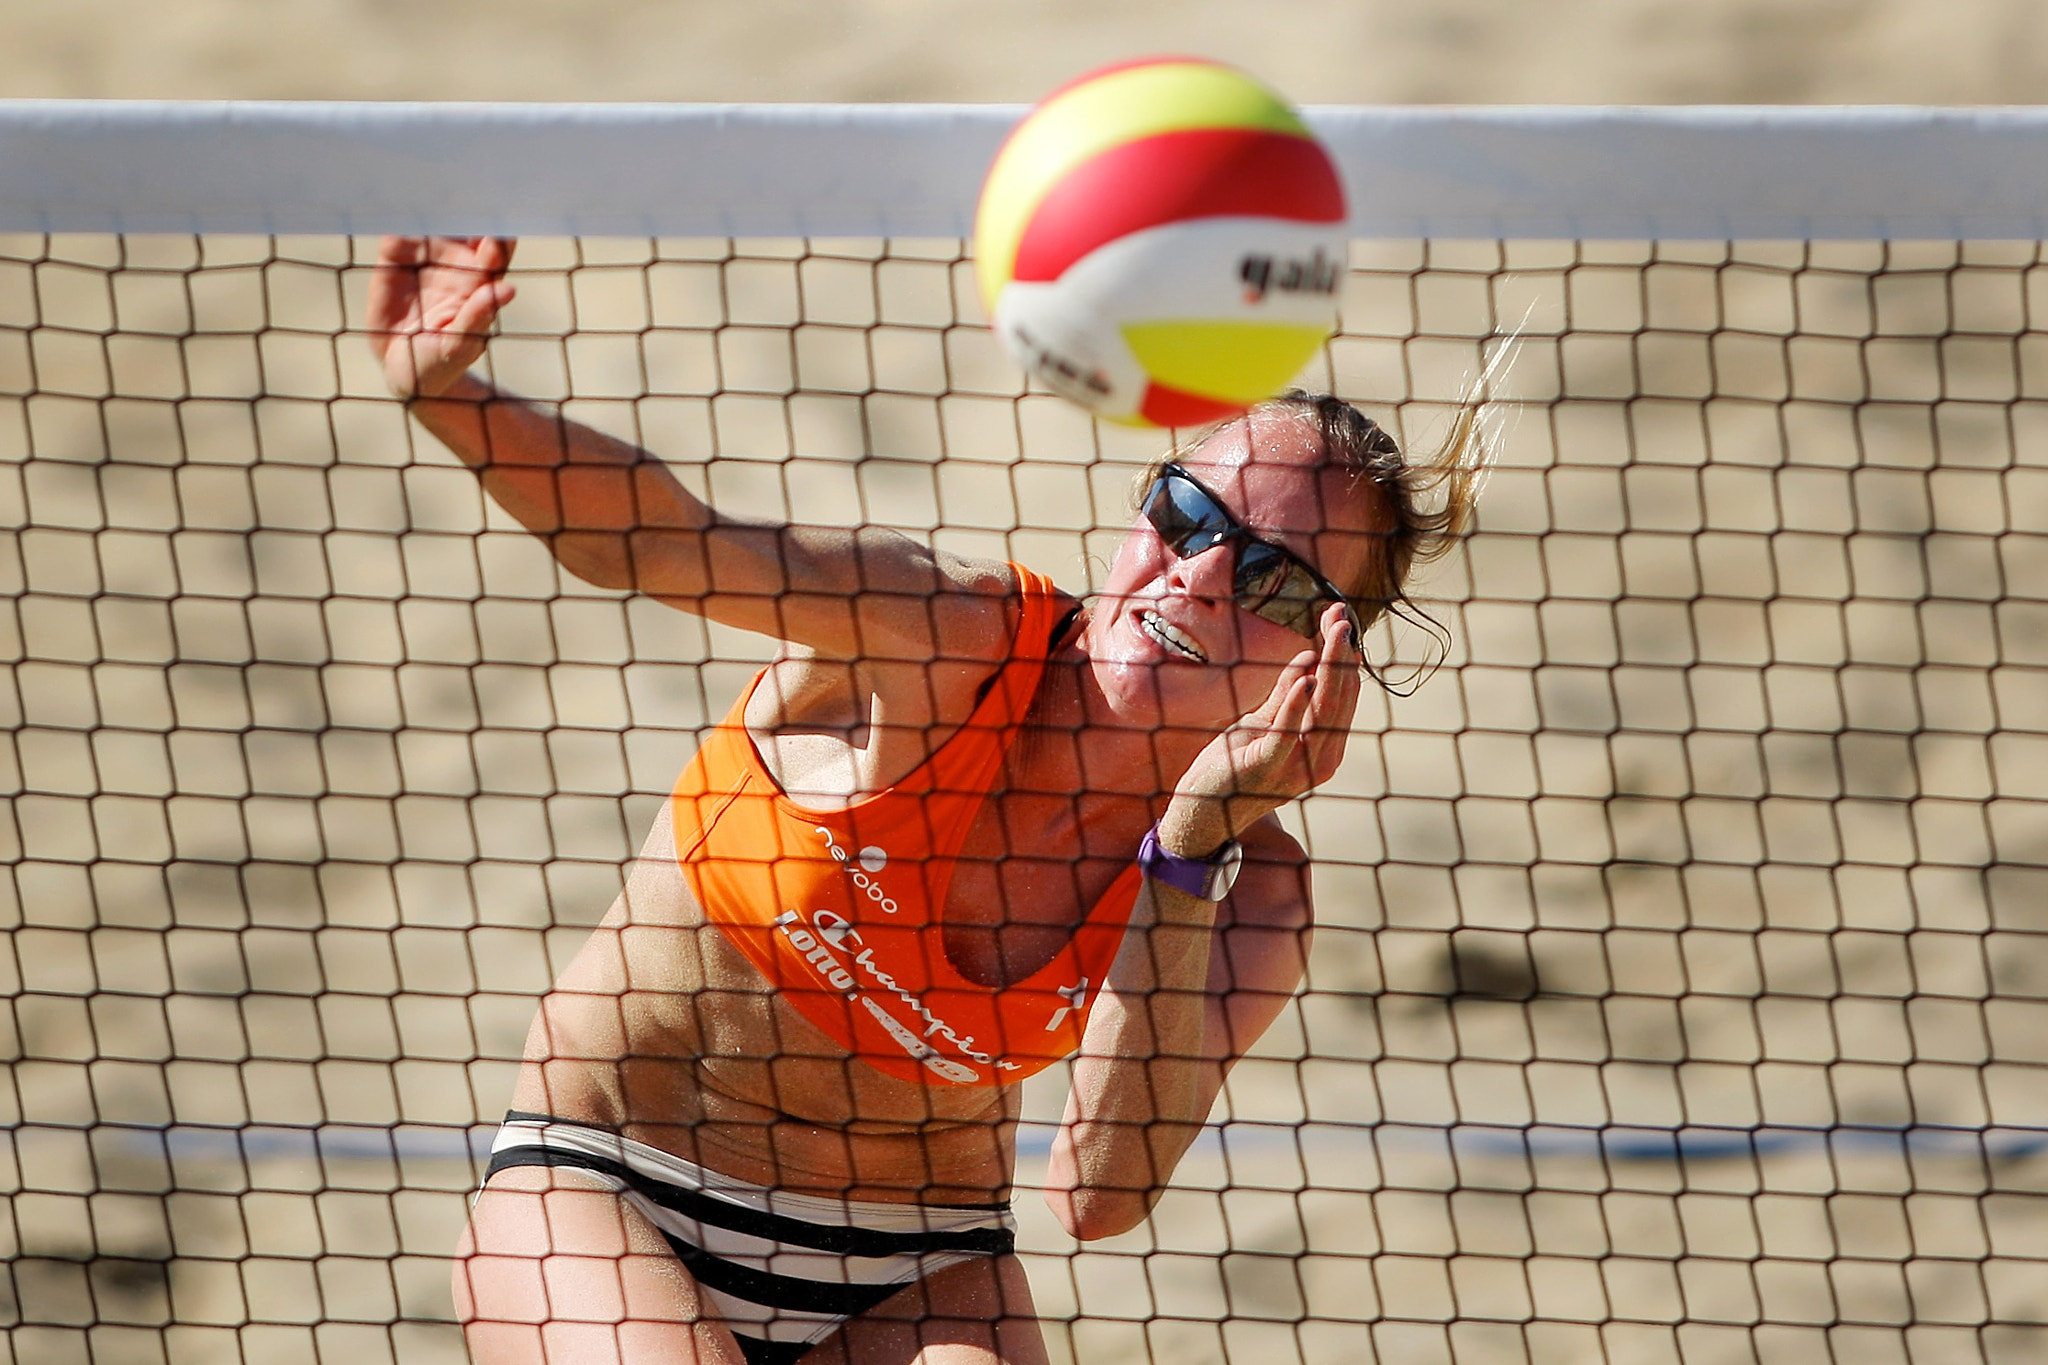 Photograph Beach Volleyball 2012 by Kay in 't Veen on 500px